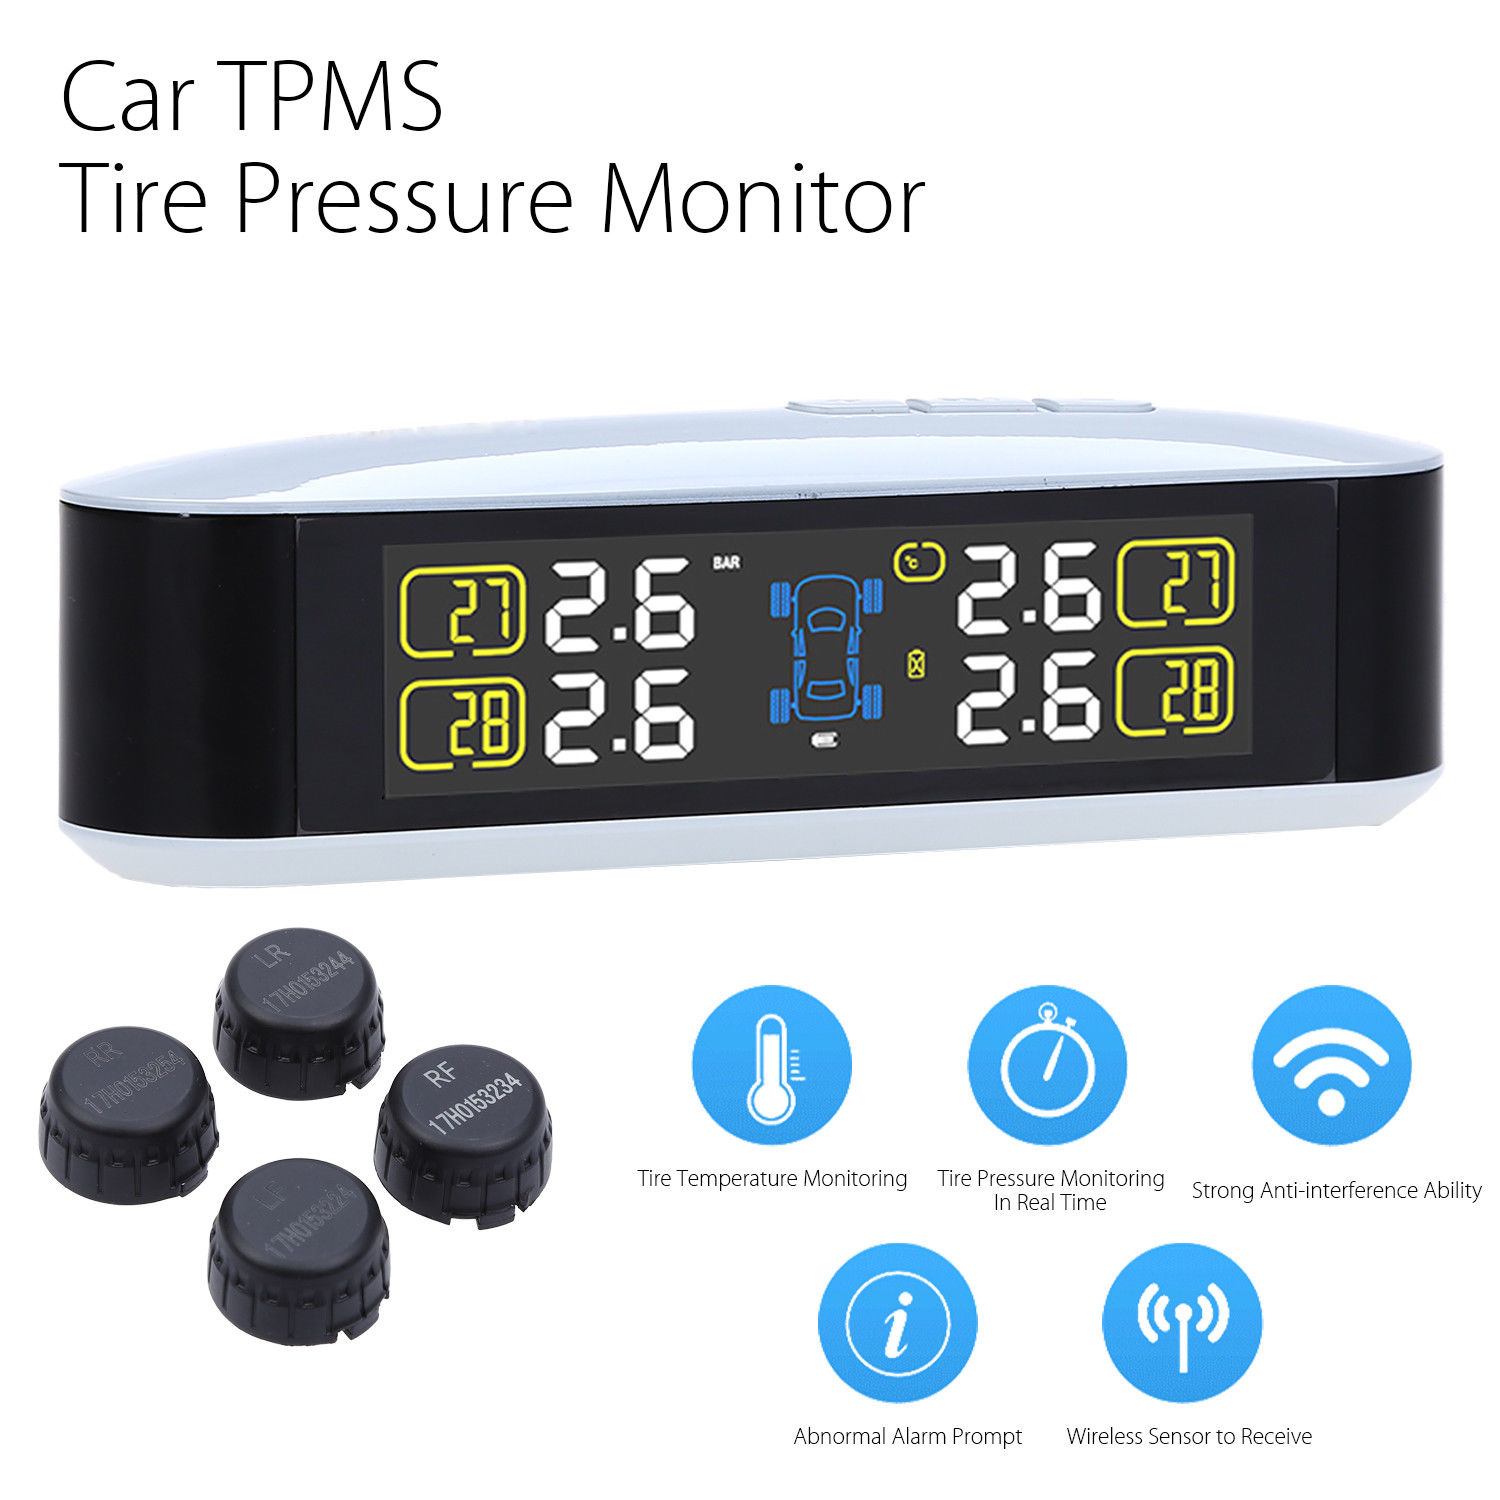 Car TPMS Tire Pressure Wireless Monitoring Temperature System PSI BAR USB Alarm 4 External Sensors Auto Tire Pressure Alarm LCD hotaudio tpms app car tire pressure monitoring system car tire diagnostic tool support bar and psi